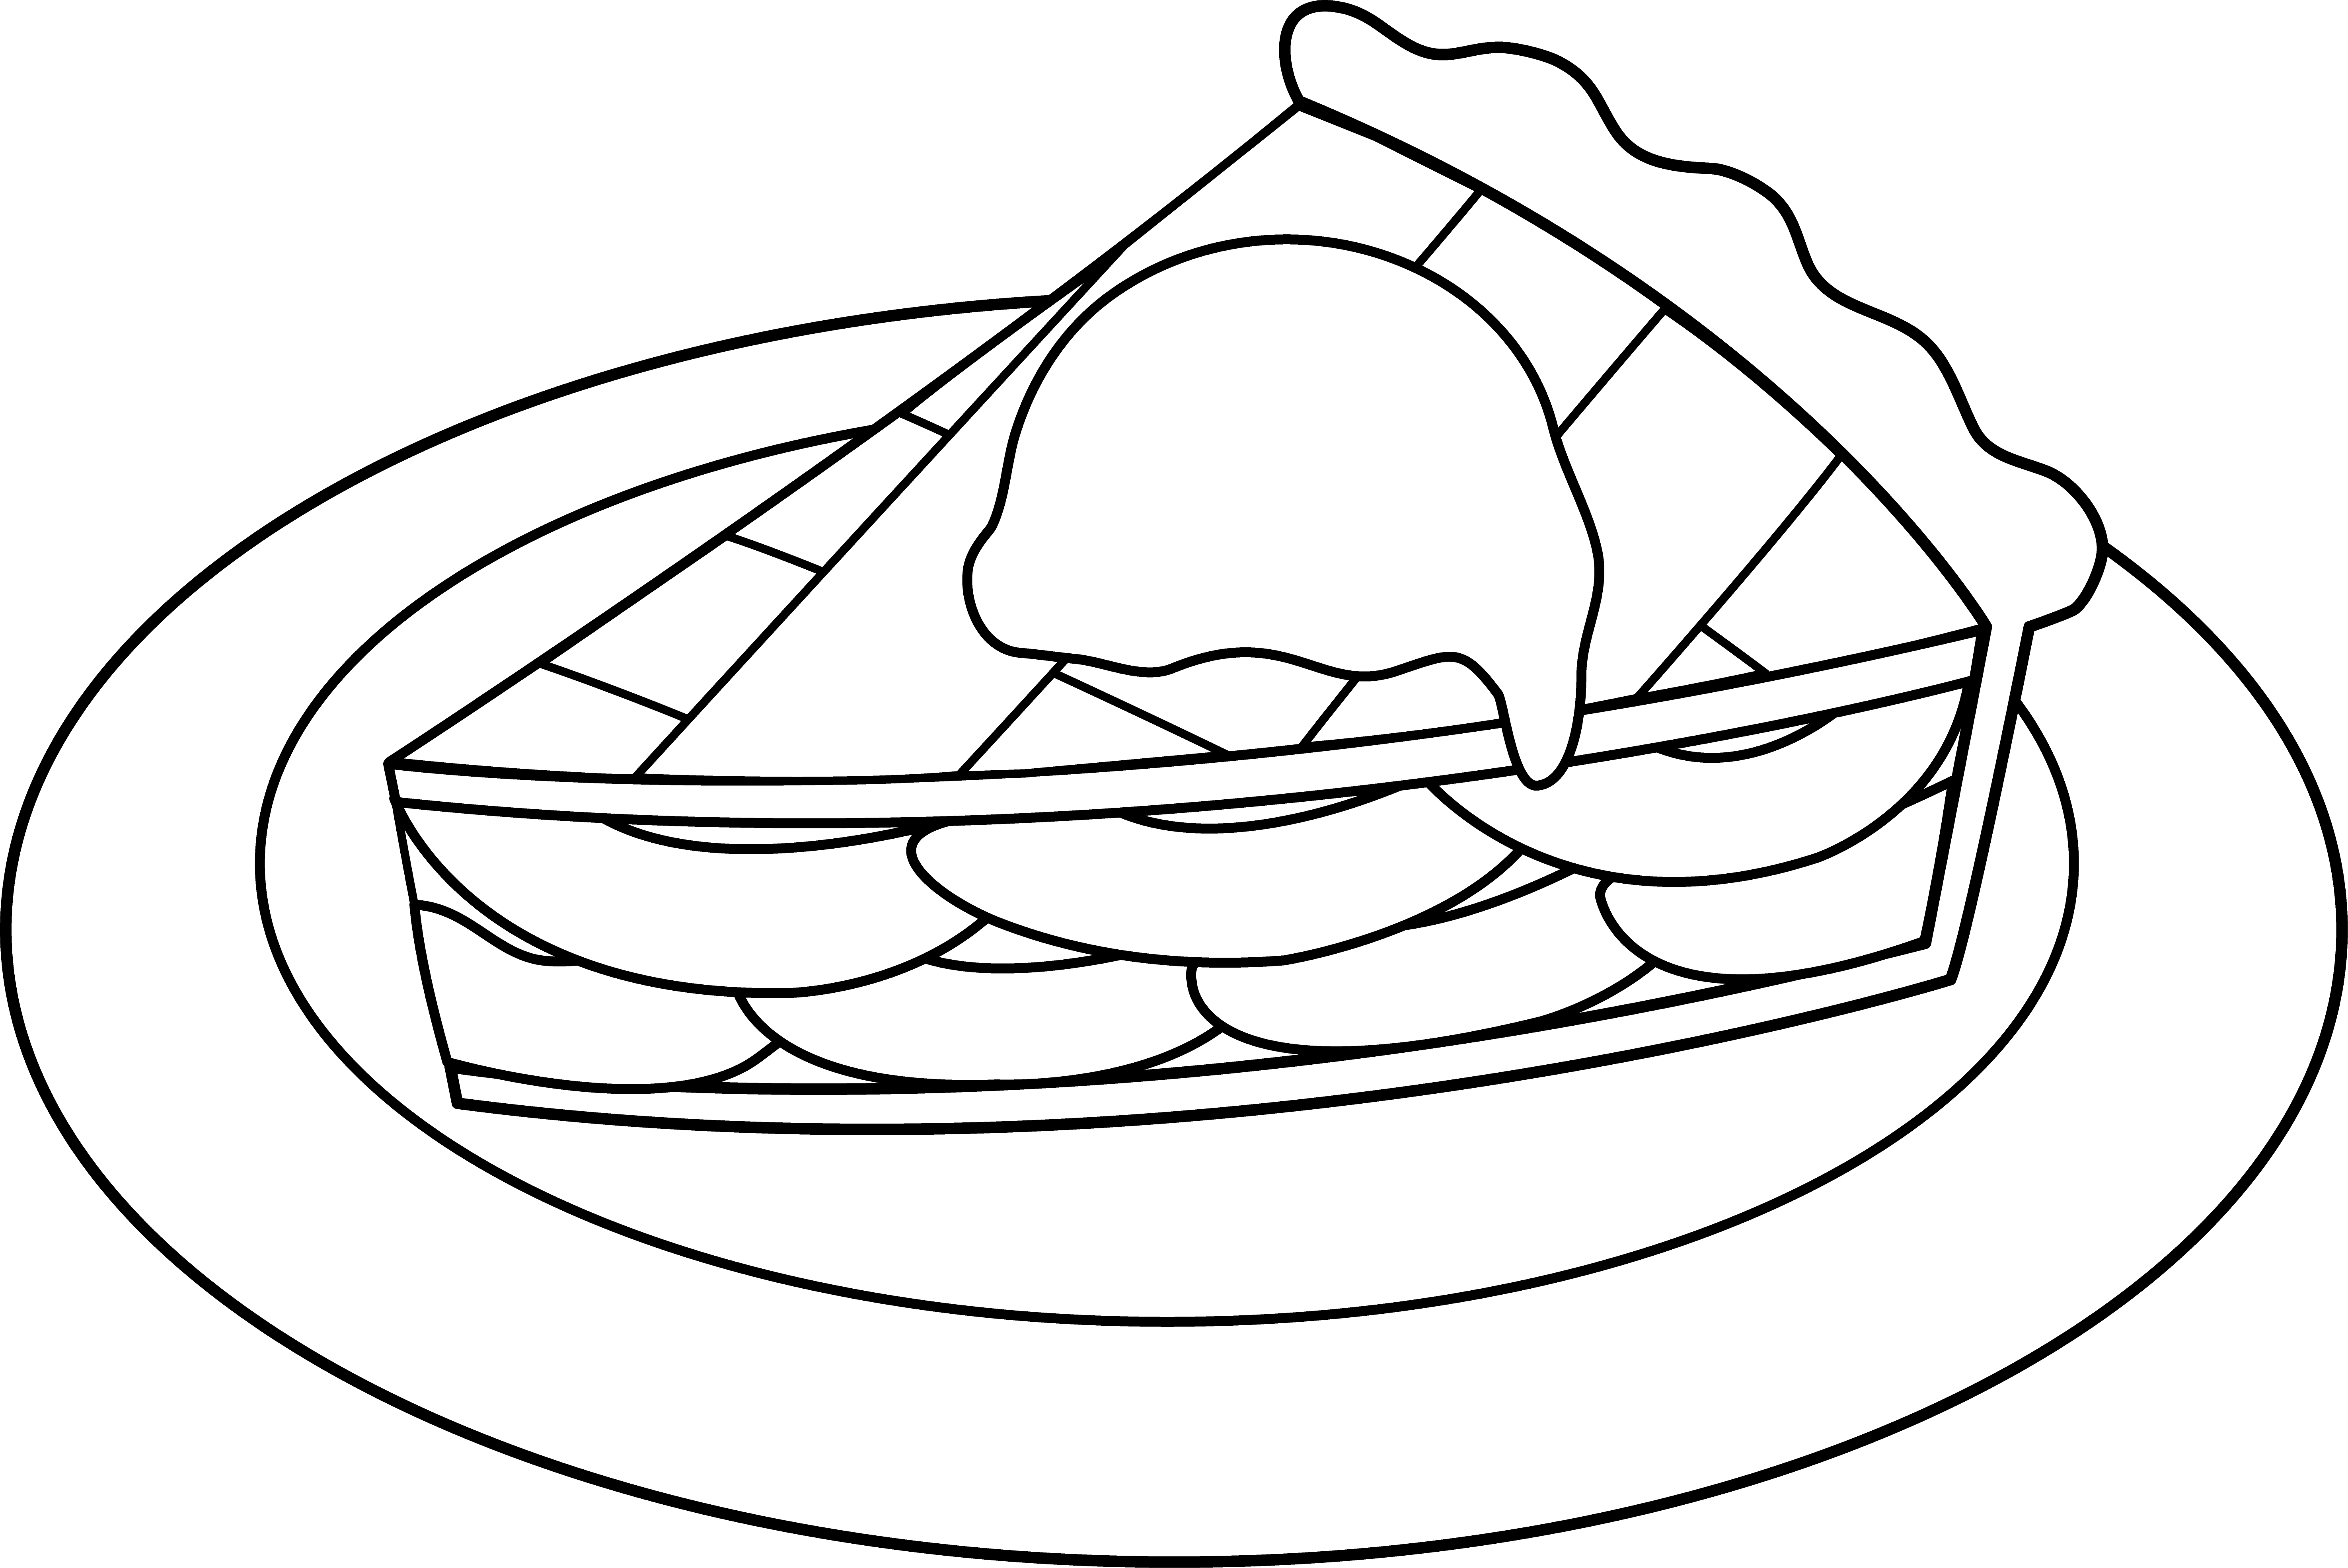 Pie clipart draw. Apple line art free